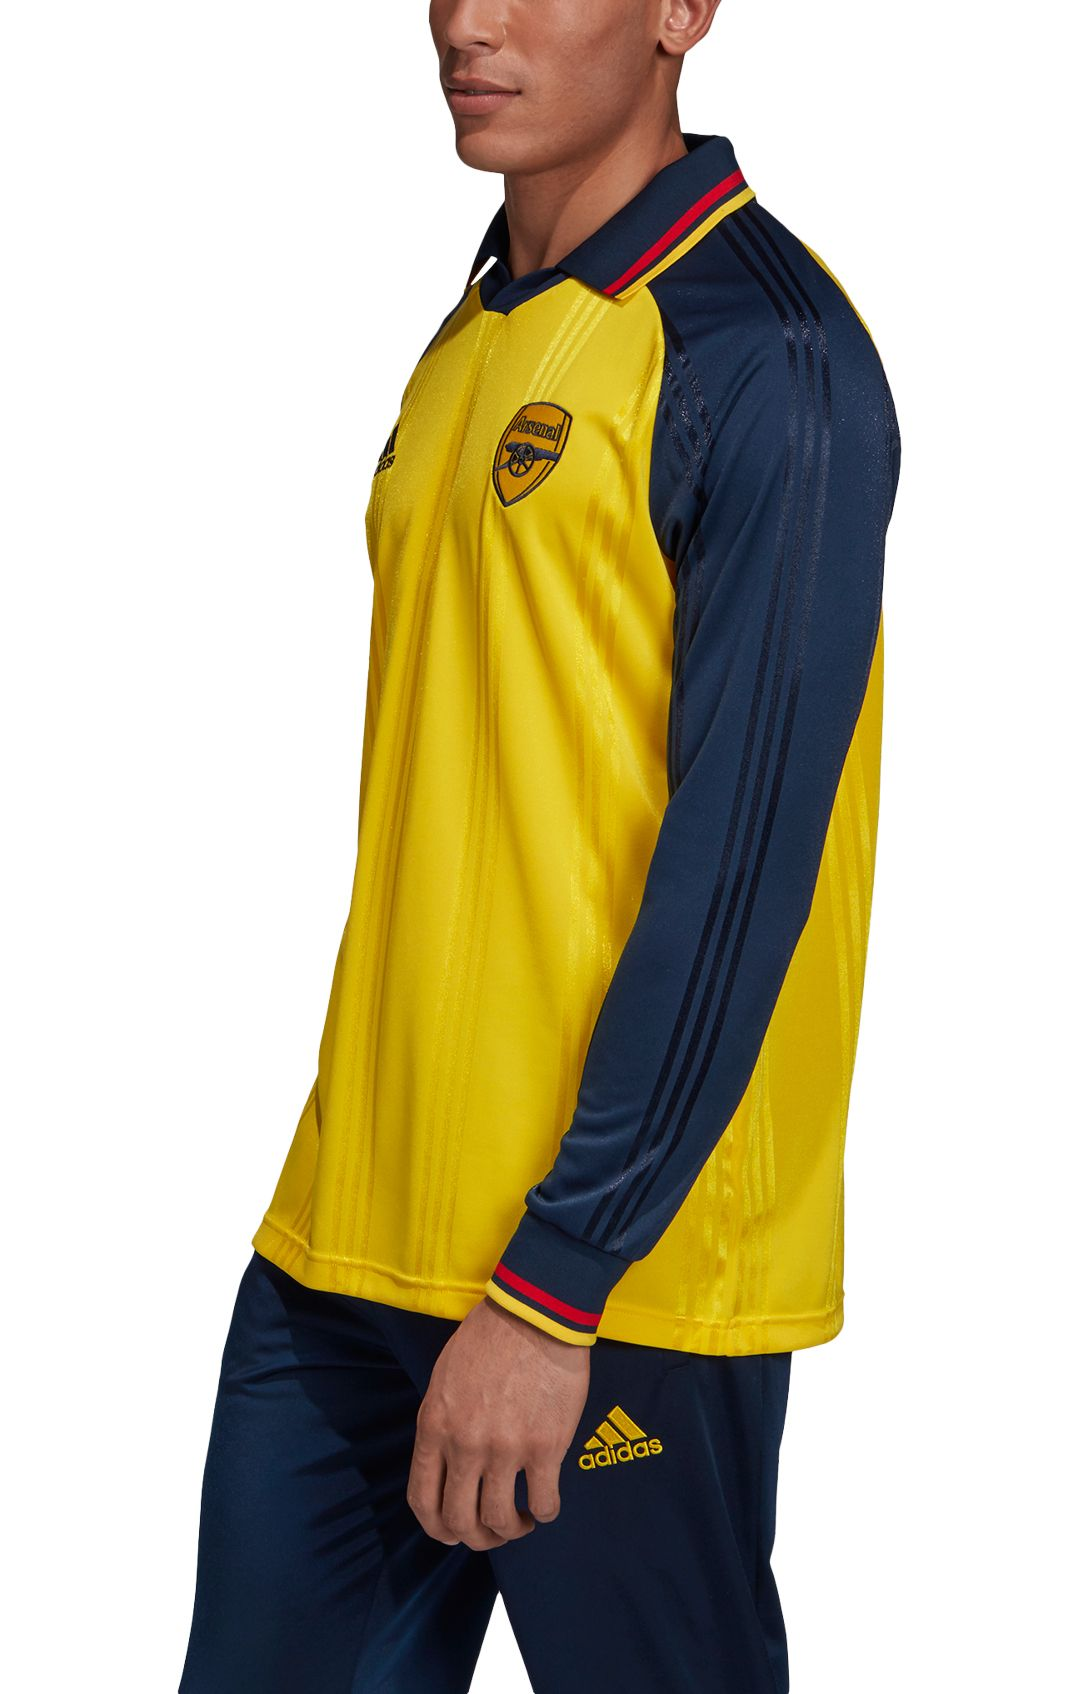 204c04e3c4 adidas Men's Arsenal Icons Yellow Long Sleeve Shirt